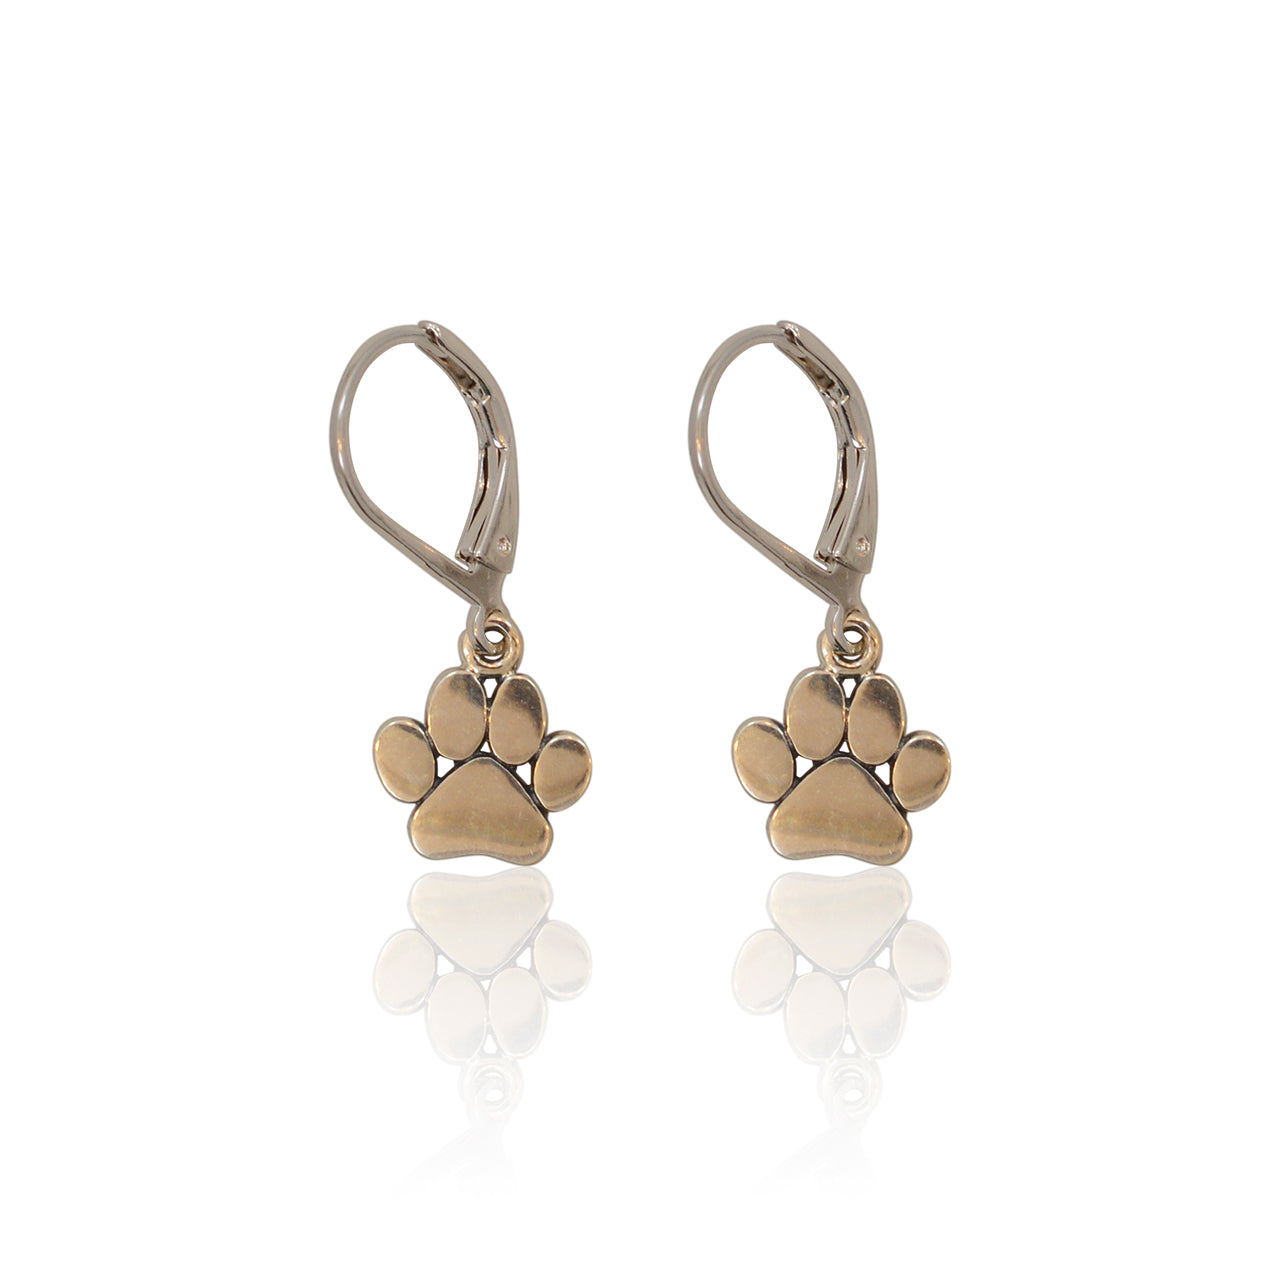 Paw Earrings - Mini